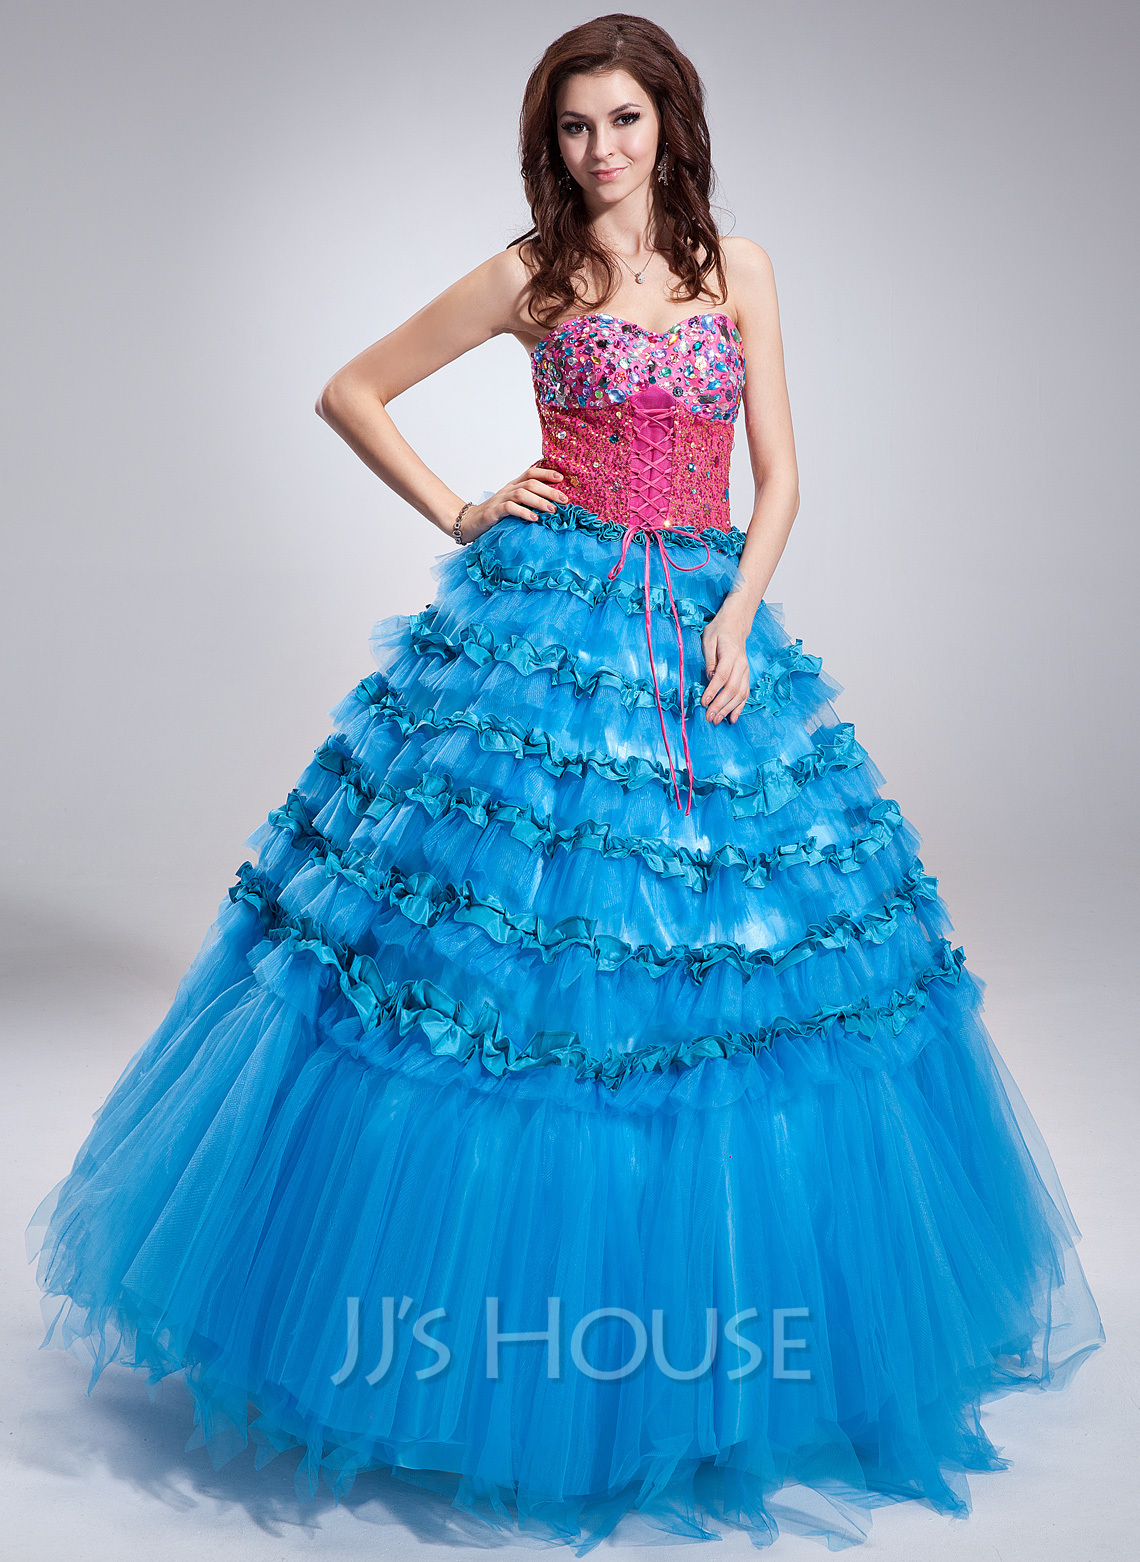 011fa1b71b93 Ball-Gown Sweetheart Floor-Length Satin Tulle Sequined Quinceanera Dress  With Beading Cascading Ruffles. Loading zoom